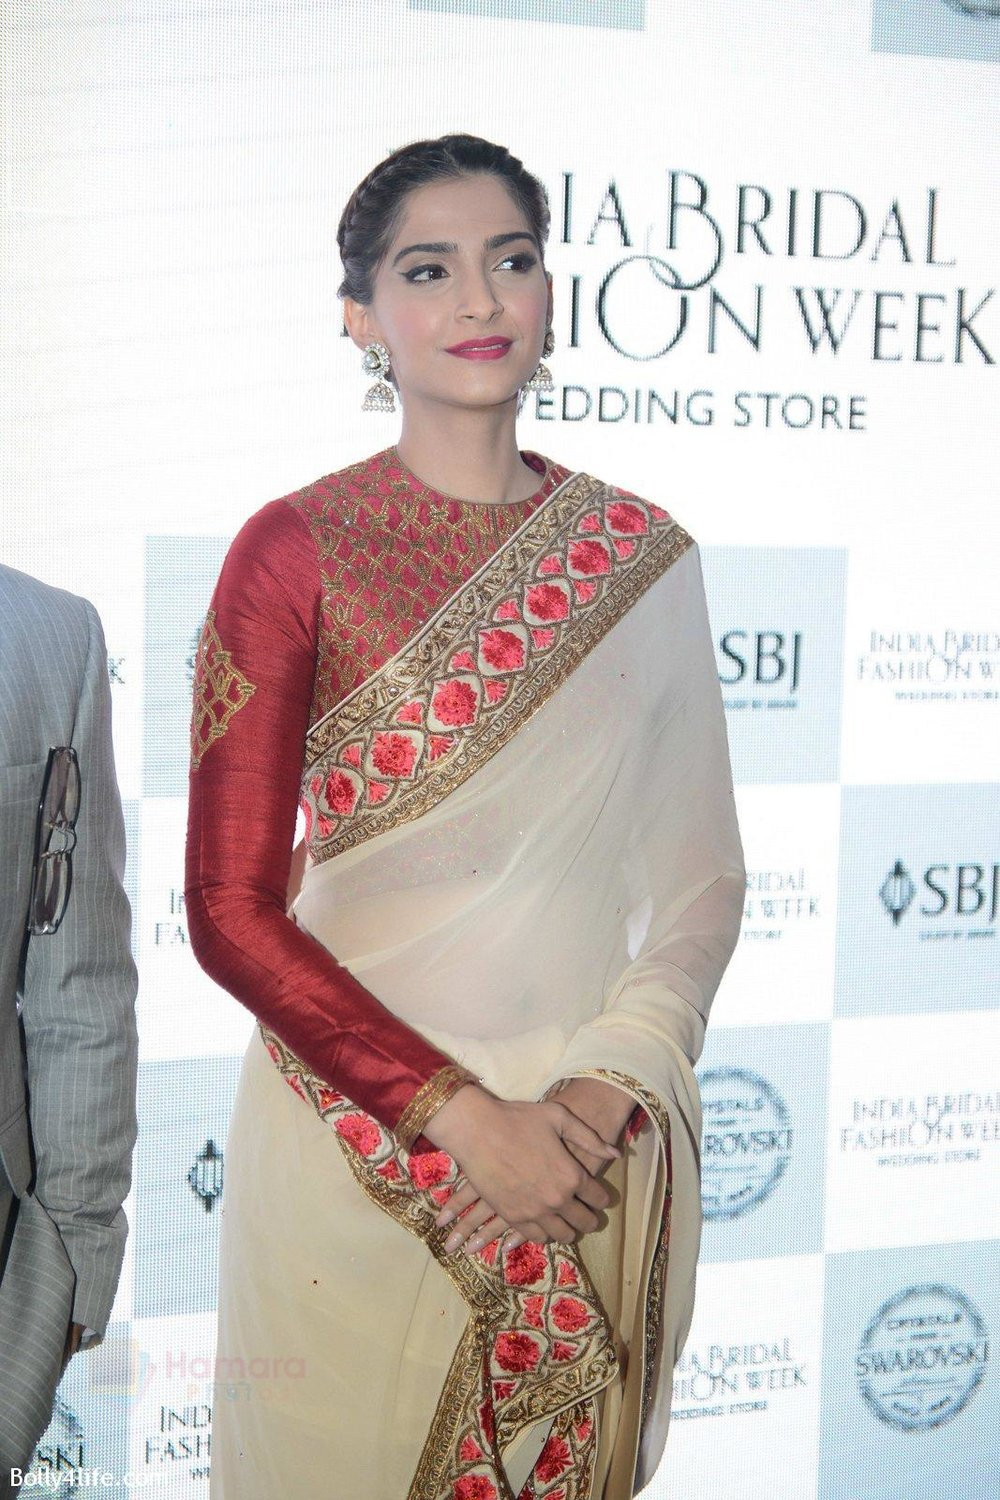 Sonam-Kapoor-during-the-launch-of-the-first-Indian-Bridal-Fashion-Week-Wedding-Store-in-New-Delhi-on-9th-Sept-2016-36.jpg